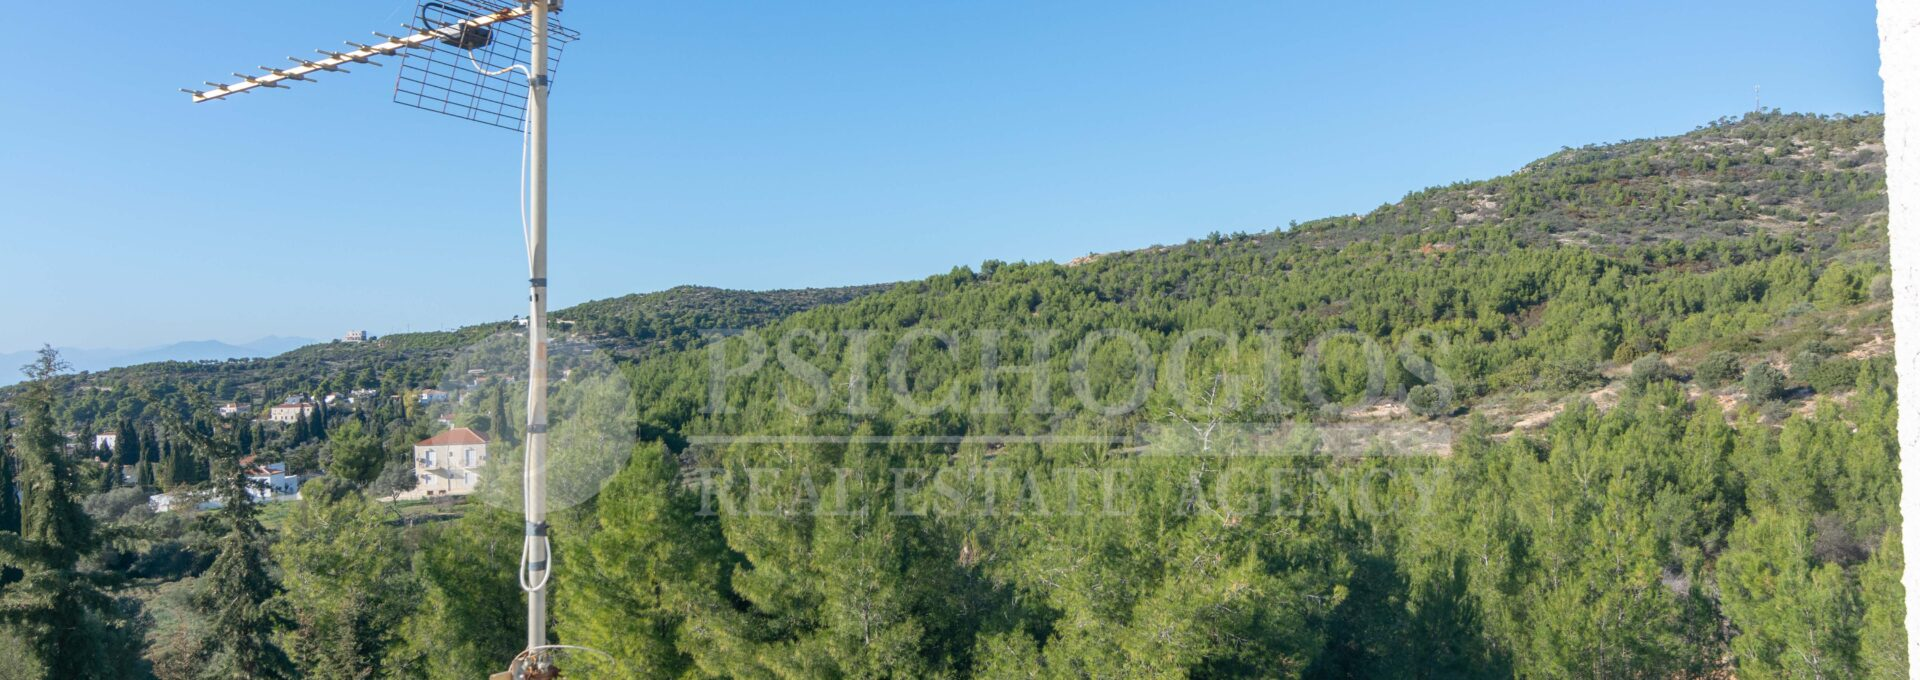 for_sale_house_200_sq.m._4_bedrooms_sea_view_spetses_greece 1 (36)